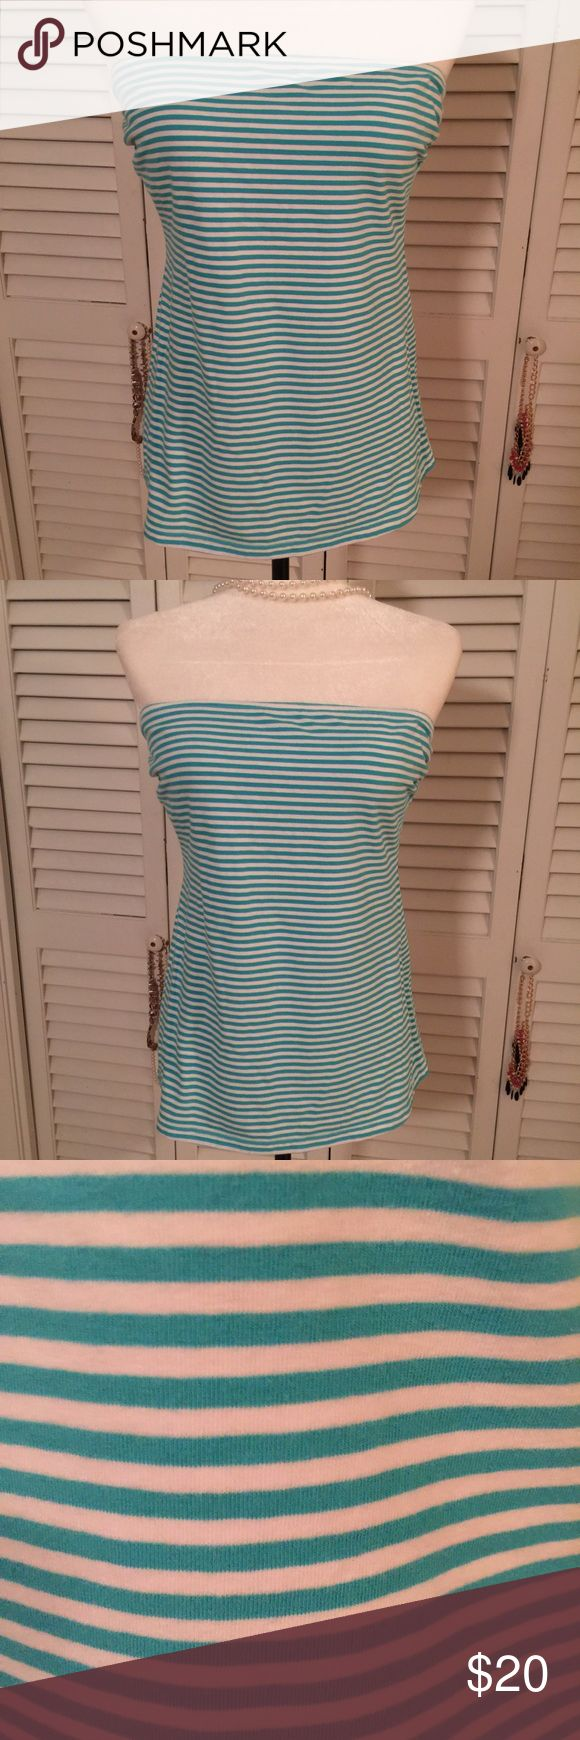 "Red Camel Strapless stripe Top Size XL EUC and beautiful!  Aqua colored stripes on white.  Size is XL.  This has a Bra made in.  Fabric shown in photo.  Bust:  32"" laying flat no stretching. Length:  19"" Red Camel Tops Tunics"